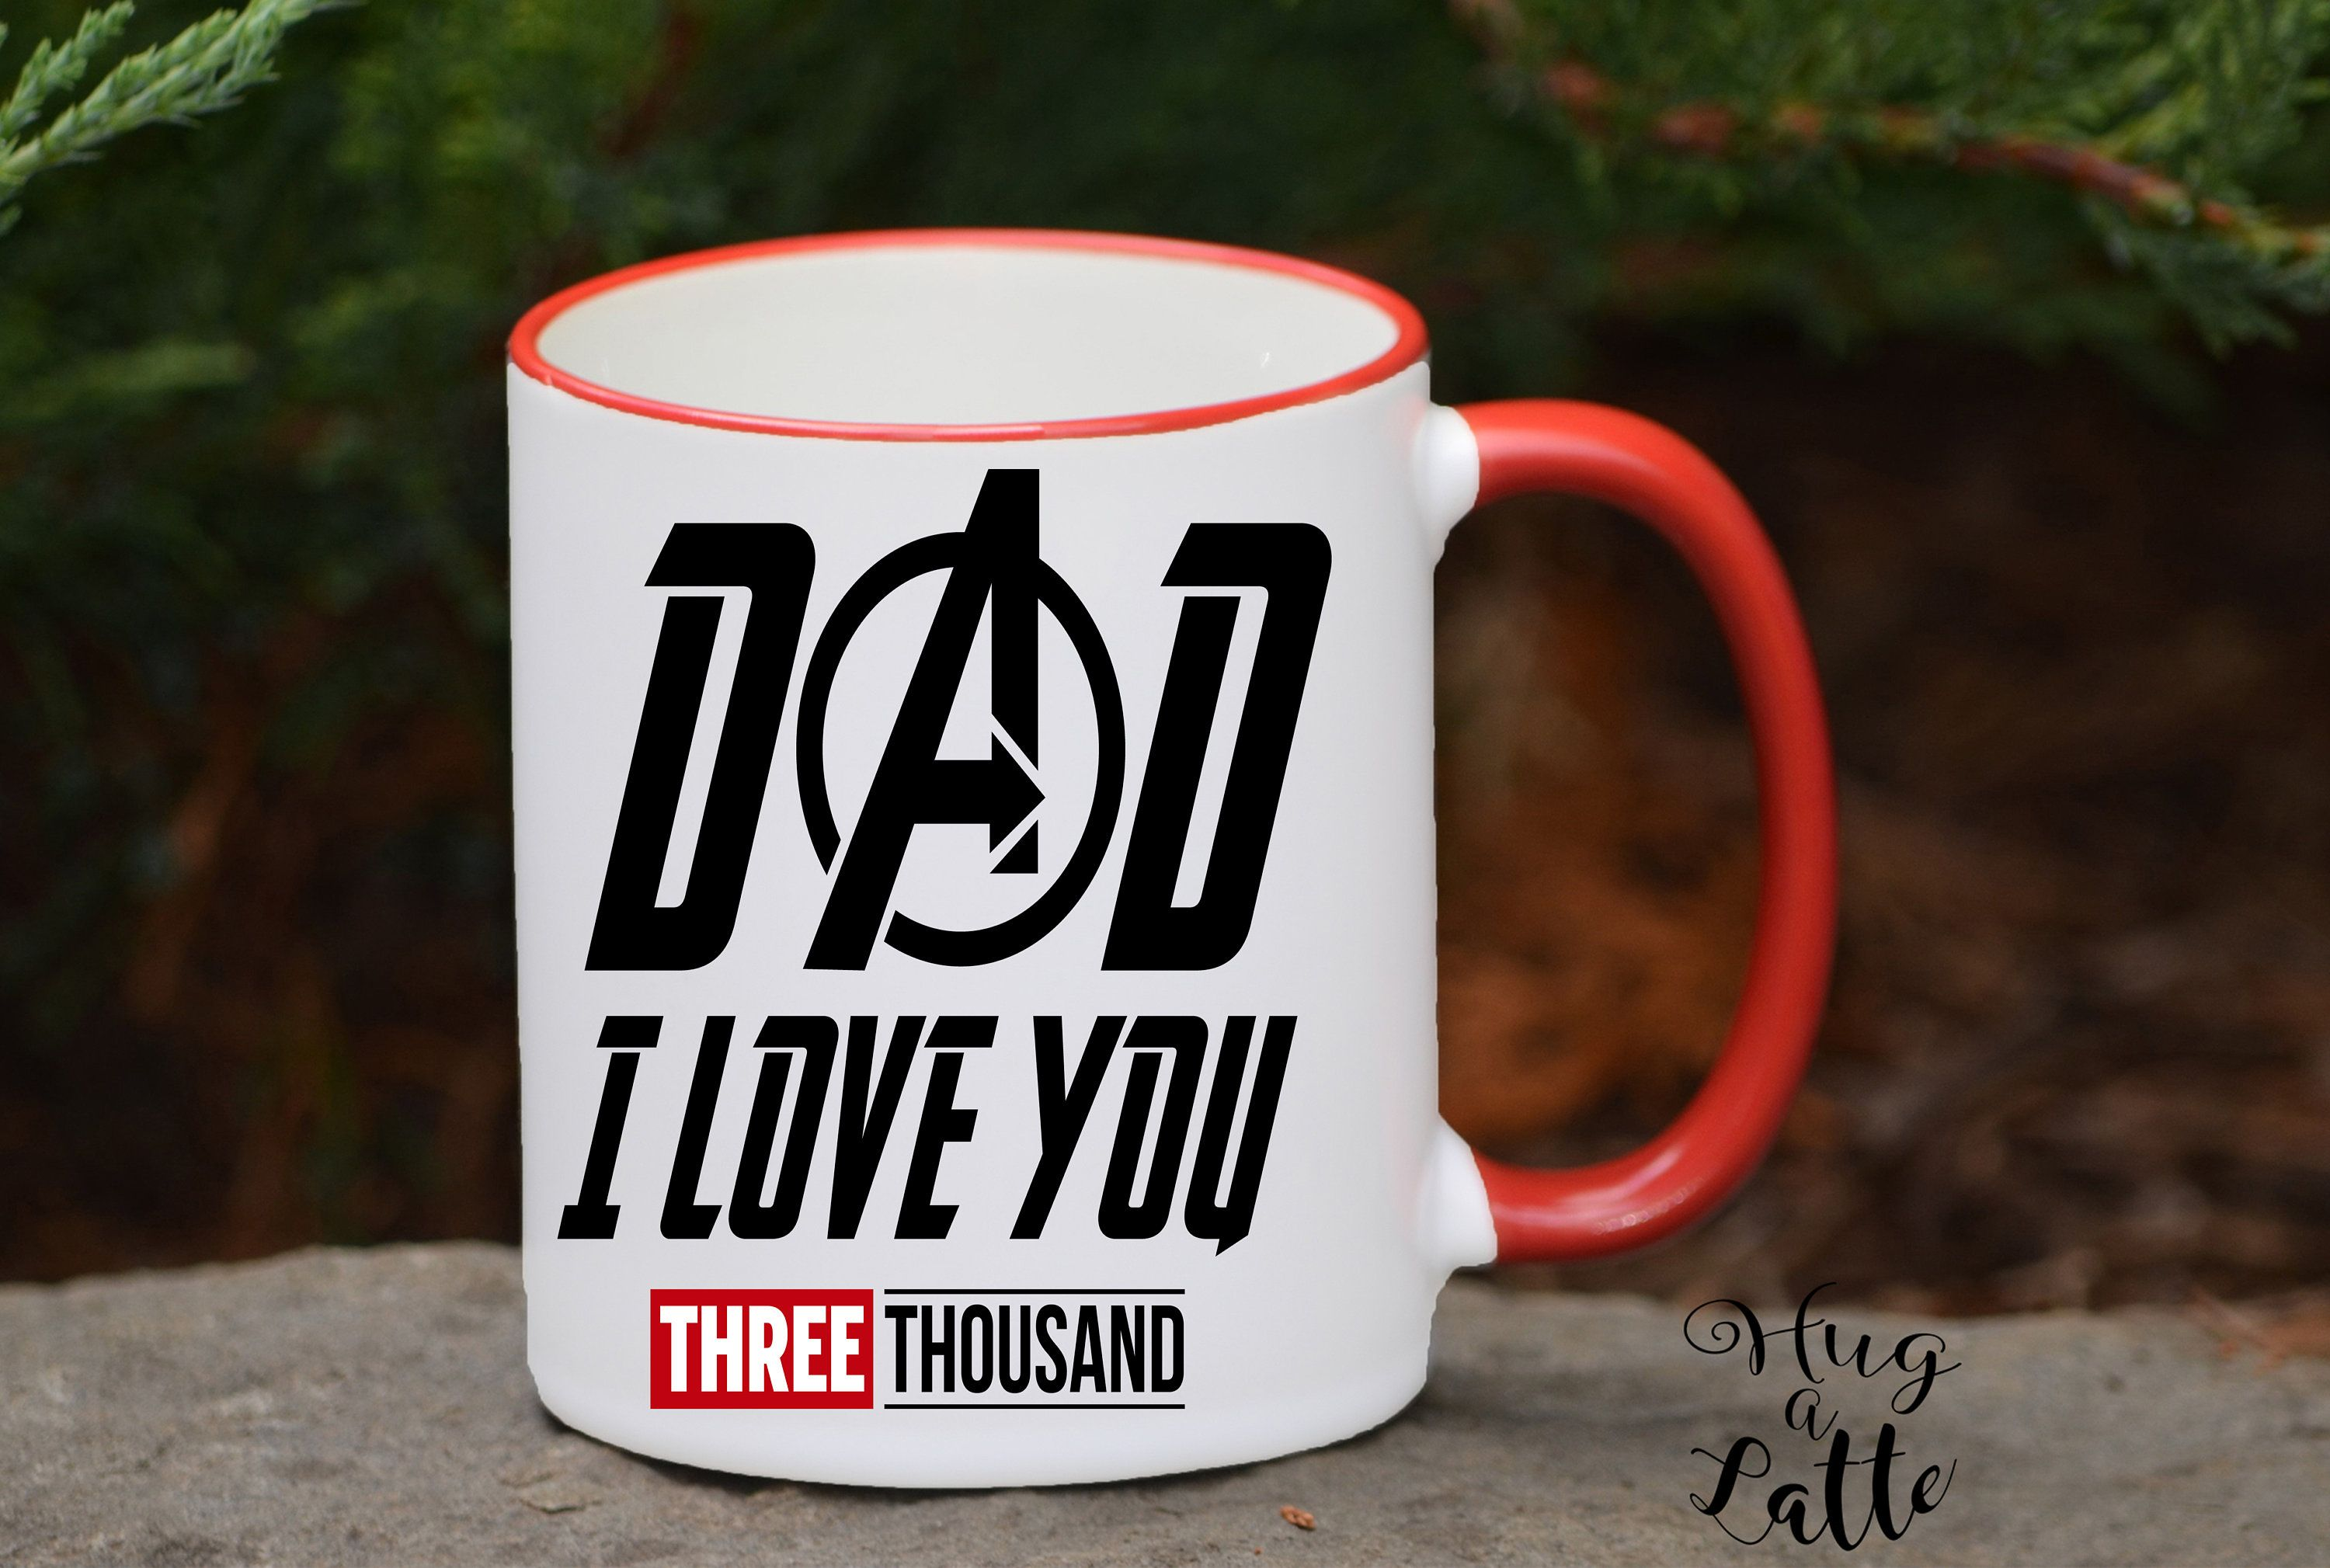 I Love You 3000 Avengers Gift For Father's Day Free